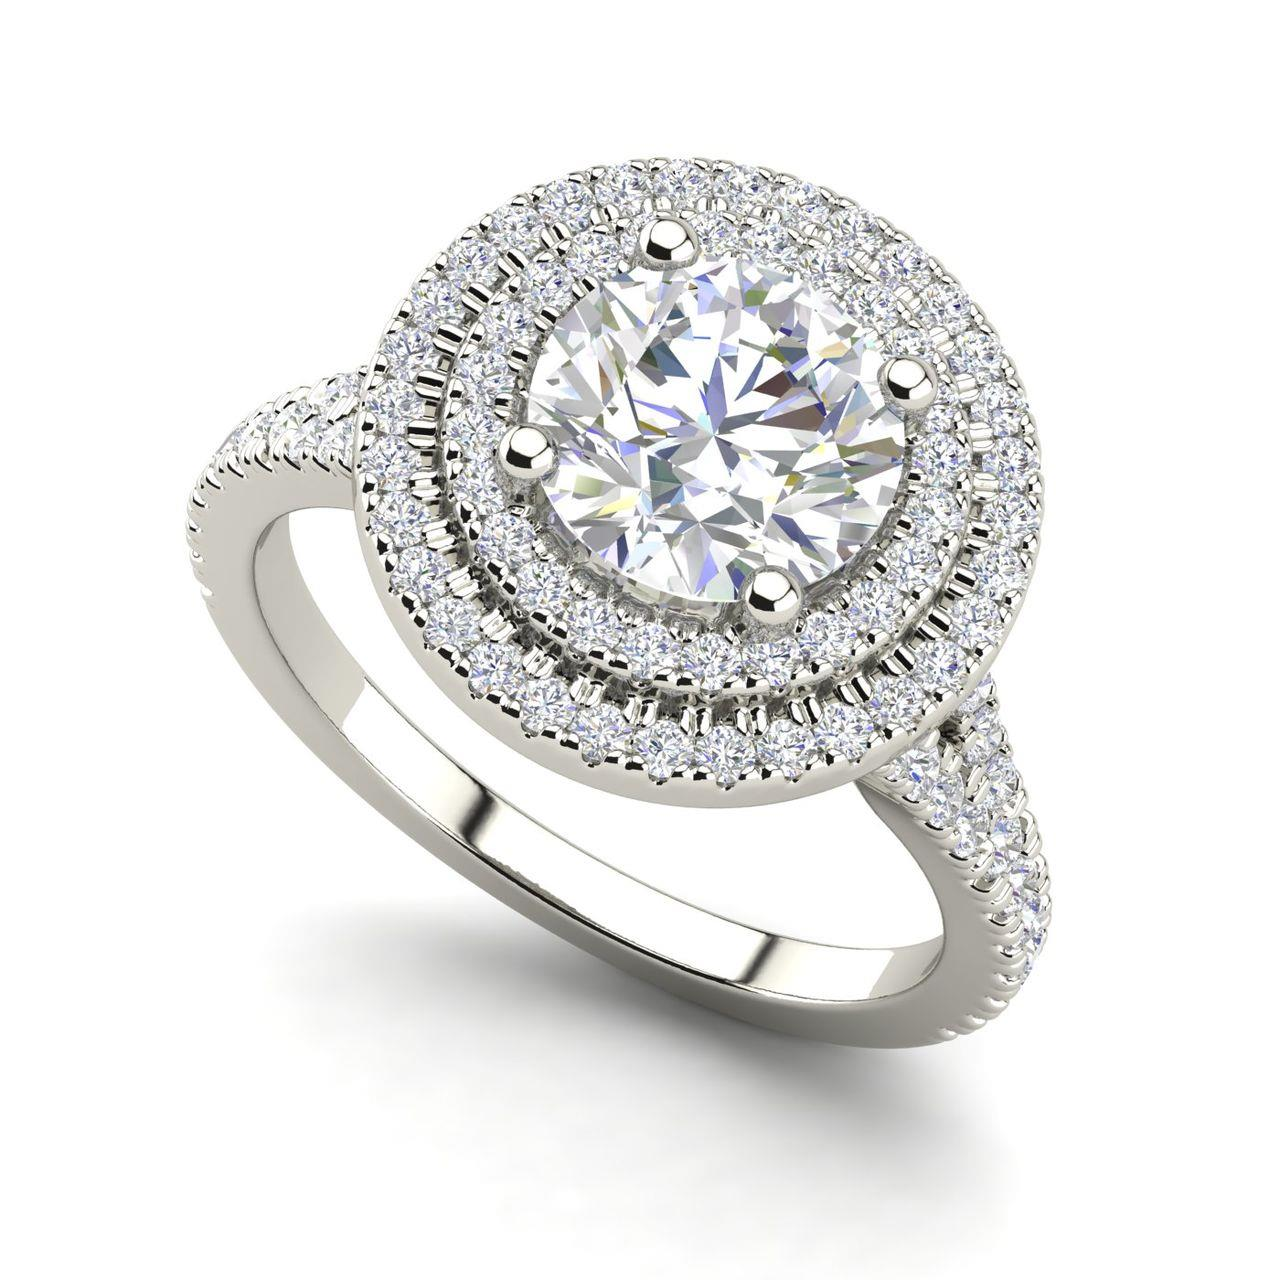 Double Halo 1.9 Carat Round Cut Diamond Engagement Ring